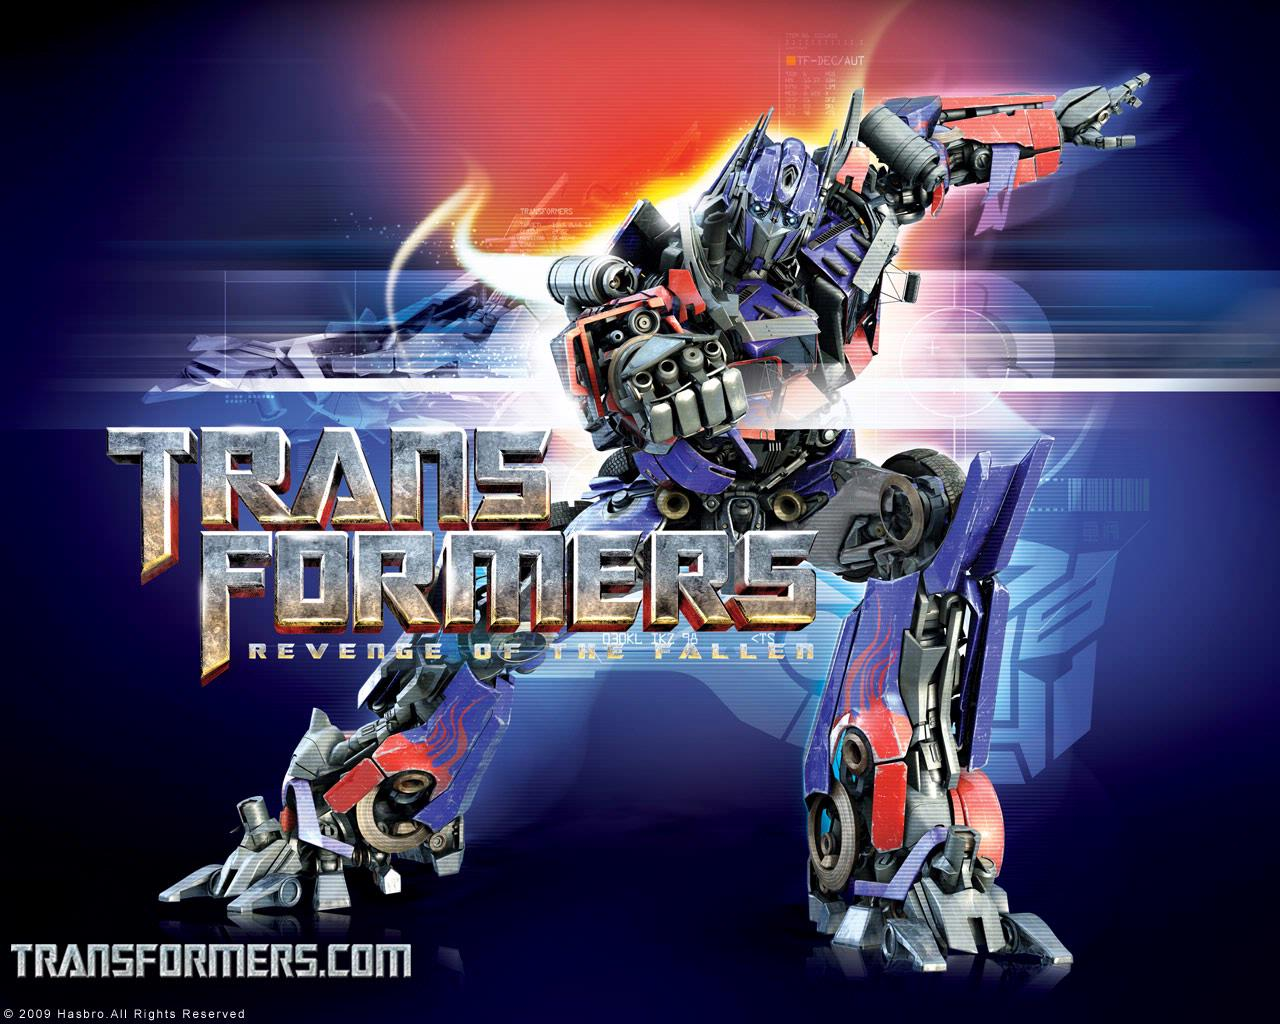 Picture Transformers Movies Transformers Revenge Of The Fallen